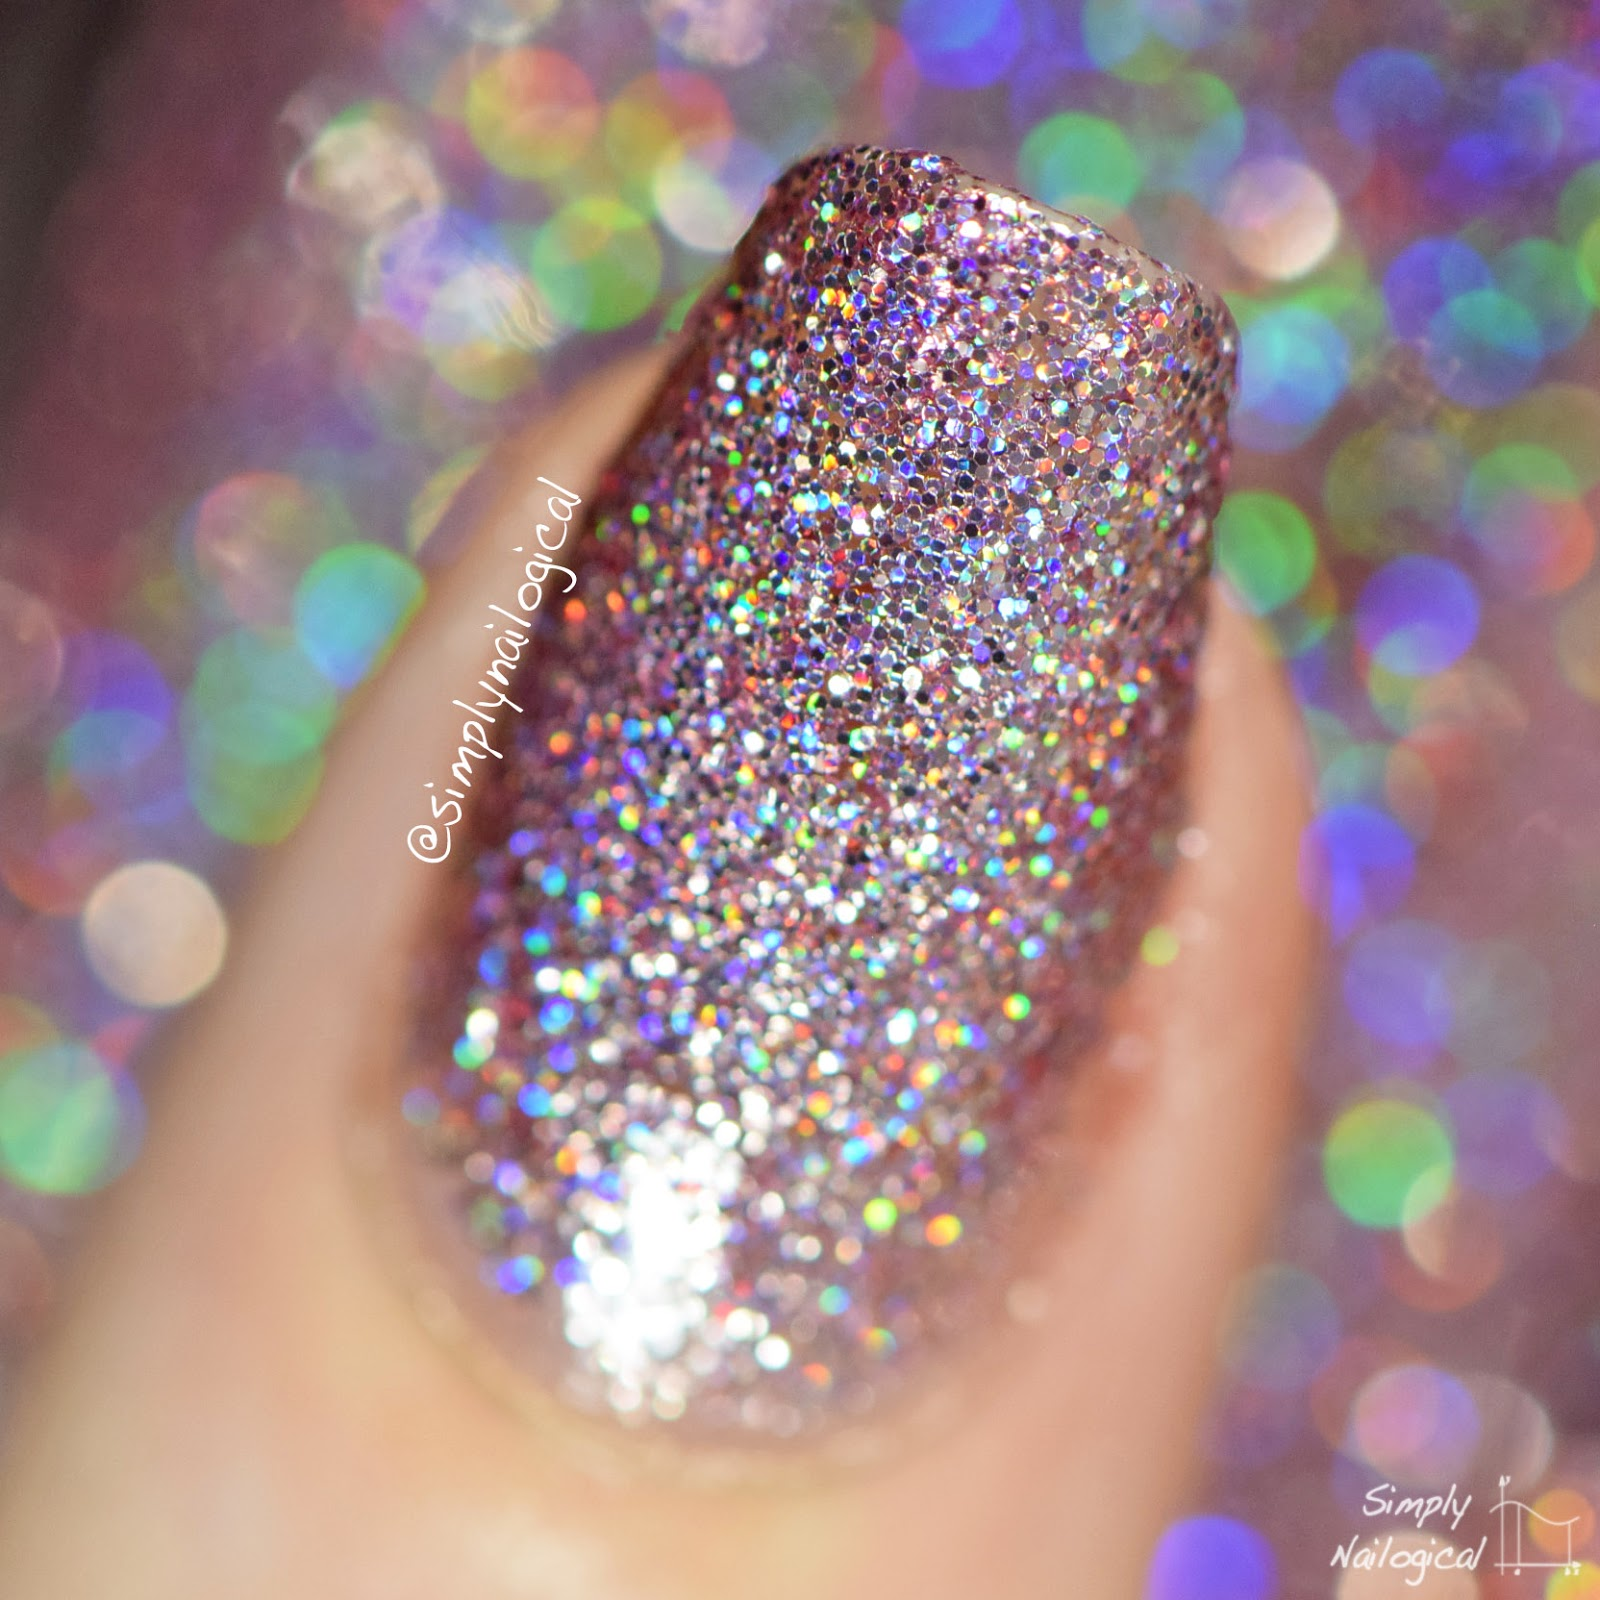 Simply Nailogical: Painted Polish releases four new holo glitters